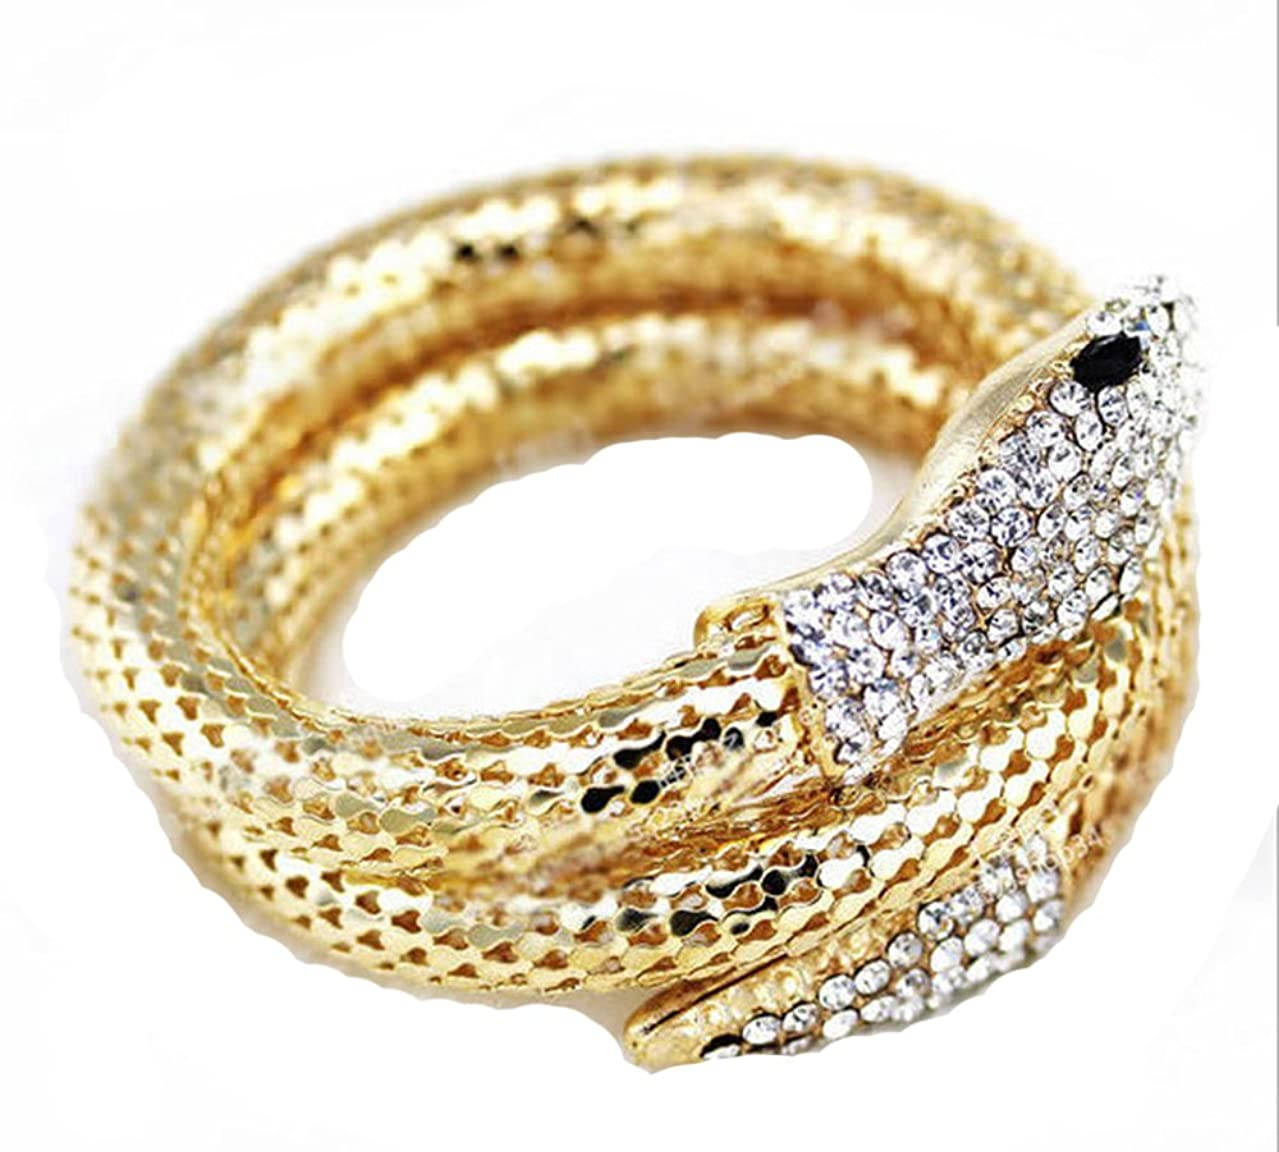 Dwcly Personnaliry Titanium Steel and Crystal Lifelike Thick Snake Stacking Wrap Wrist Cuff Bangle Bracelet